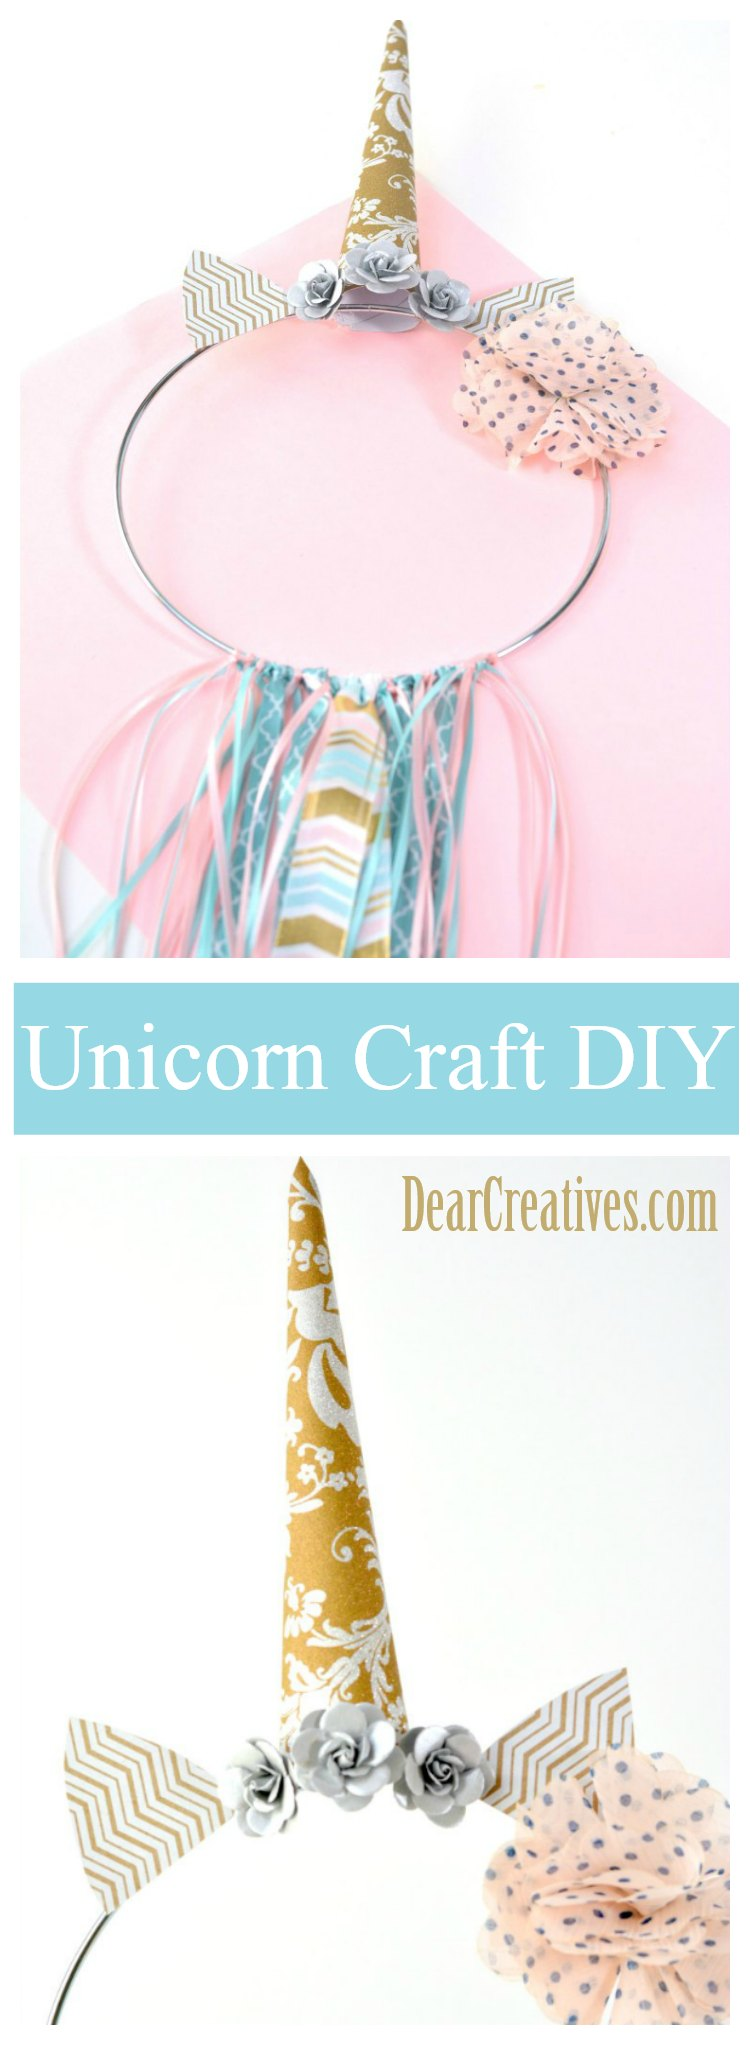 Easy to Make Unicorn Dream Catcher DIY Plus Video for Adding Webbing